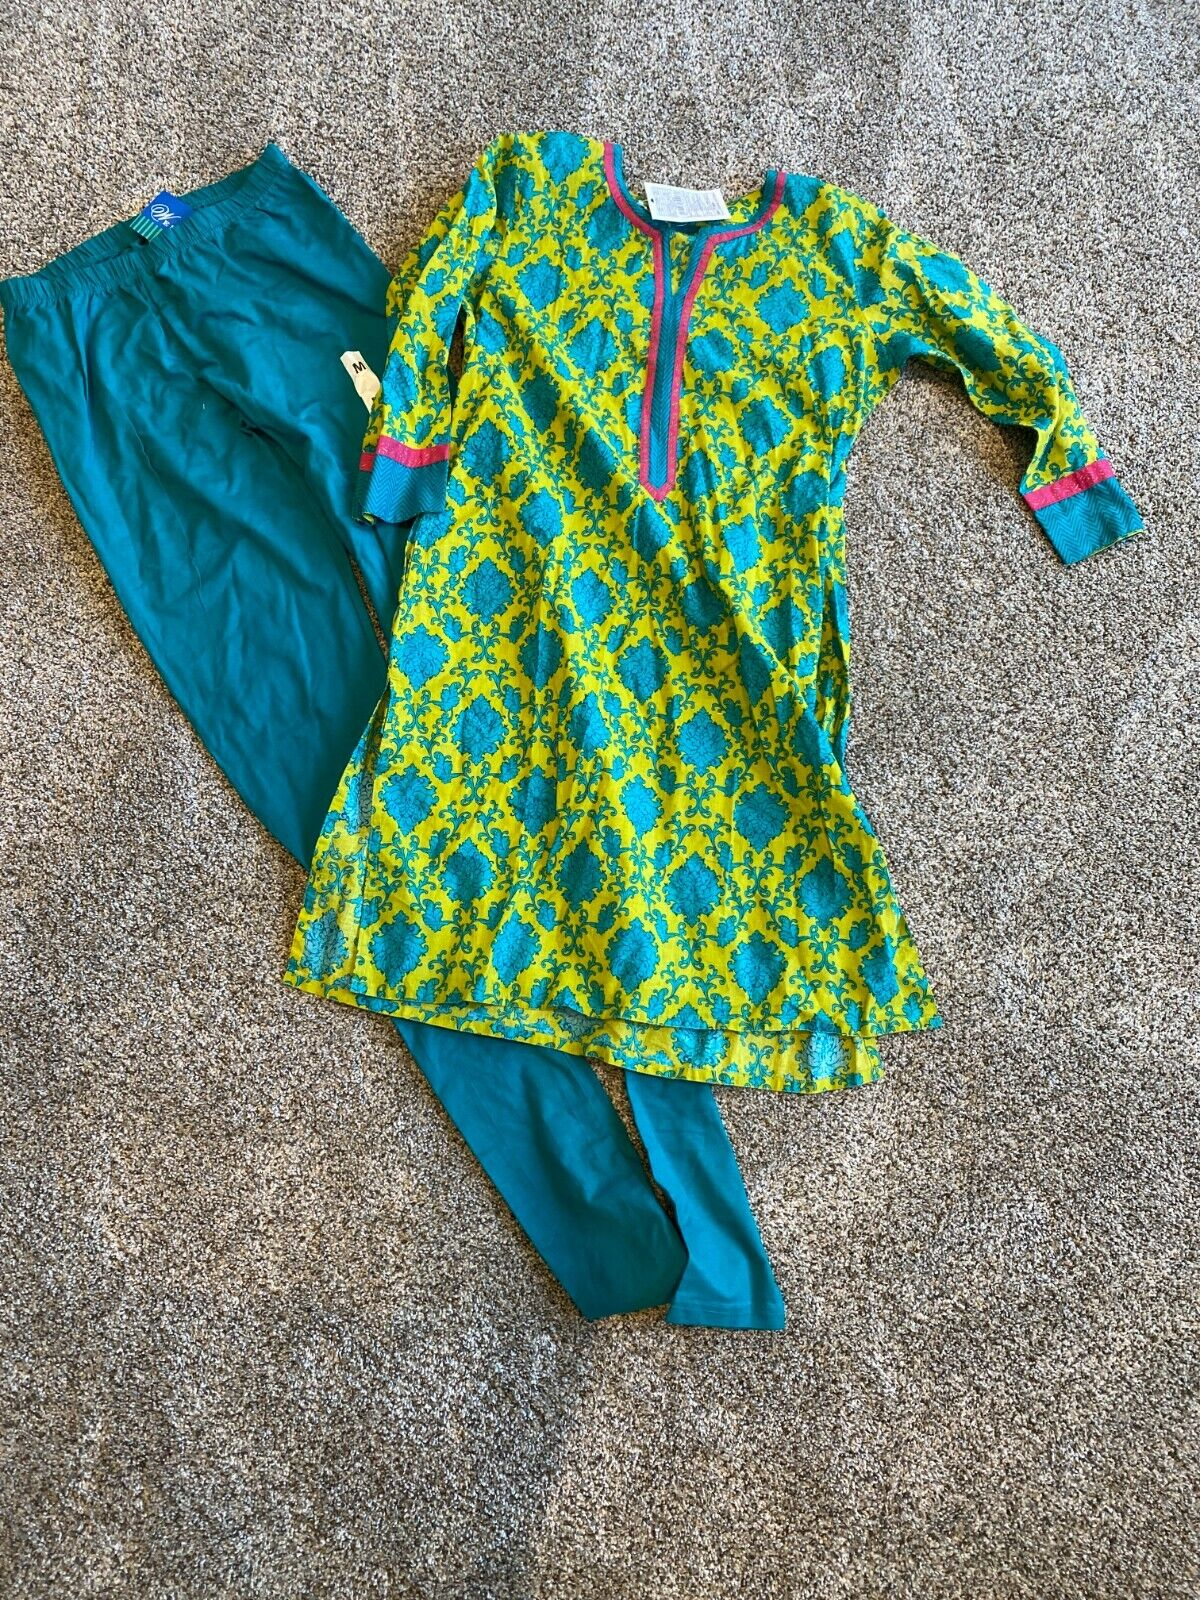 Green Kurta with matching leggings (churidar). New with tags from Westside.